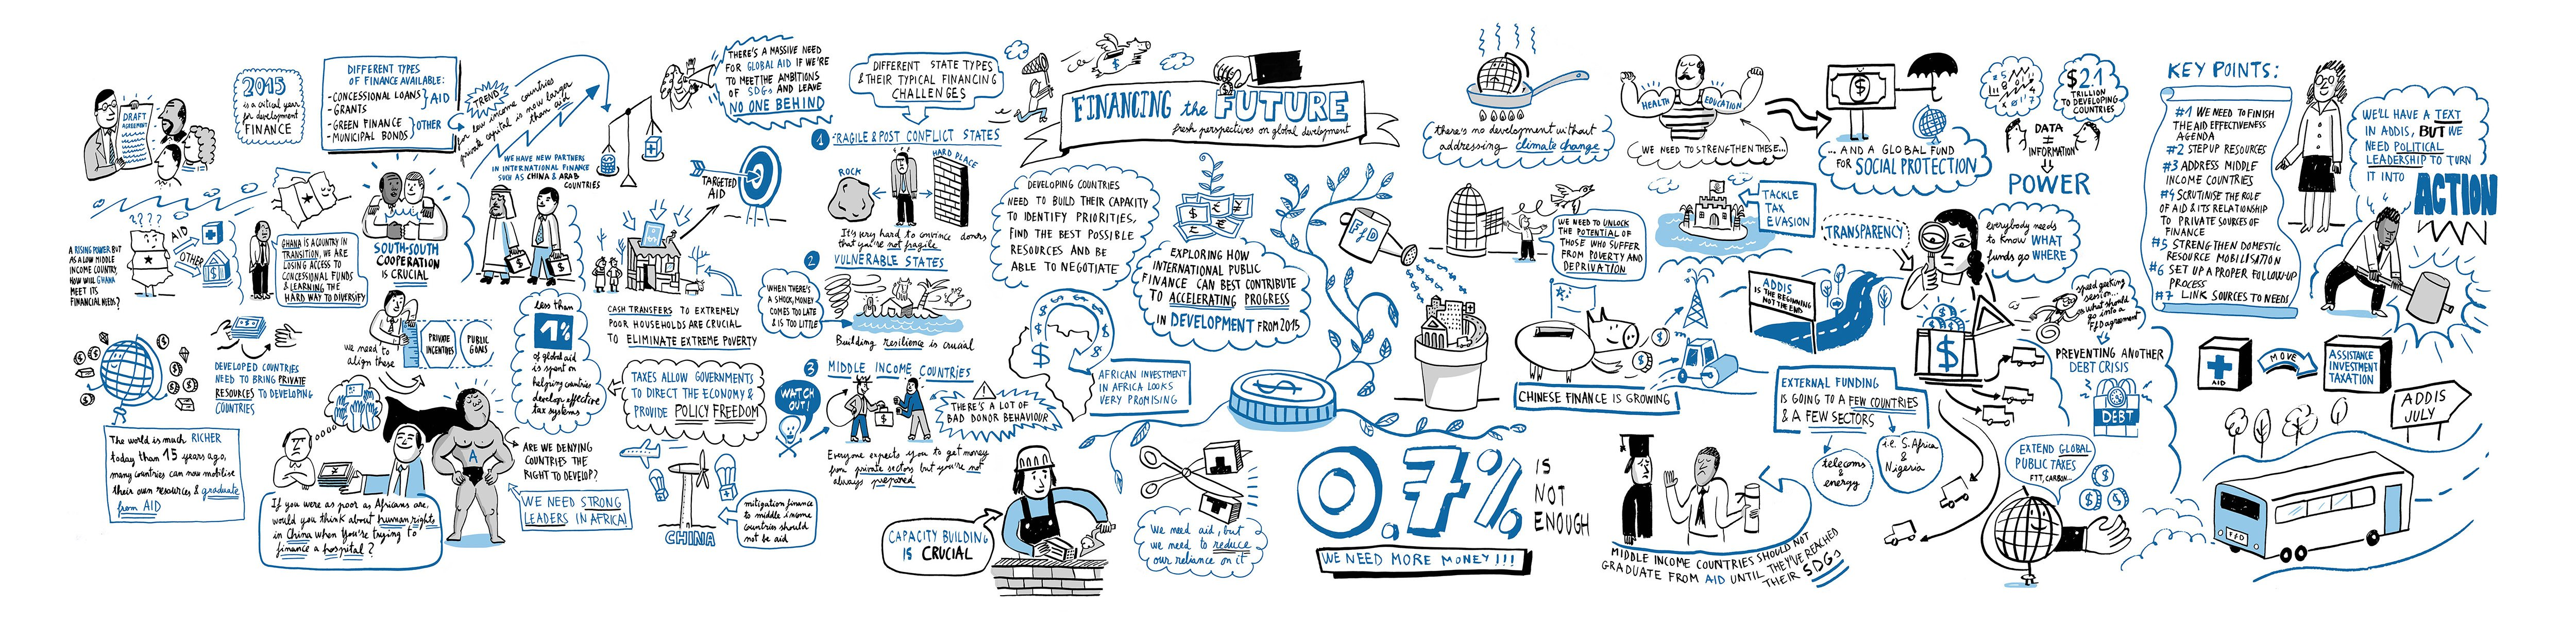 Graphic mural: 'financing the future'